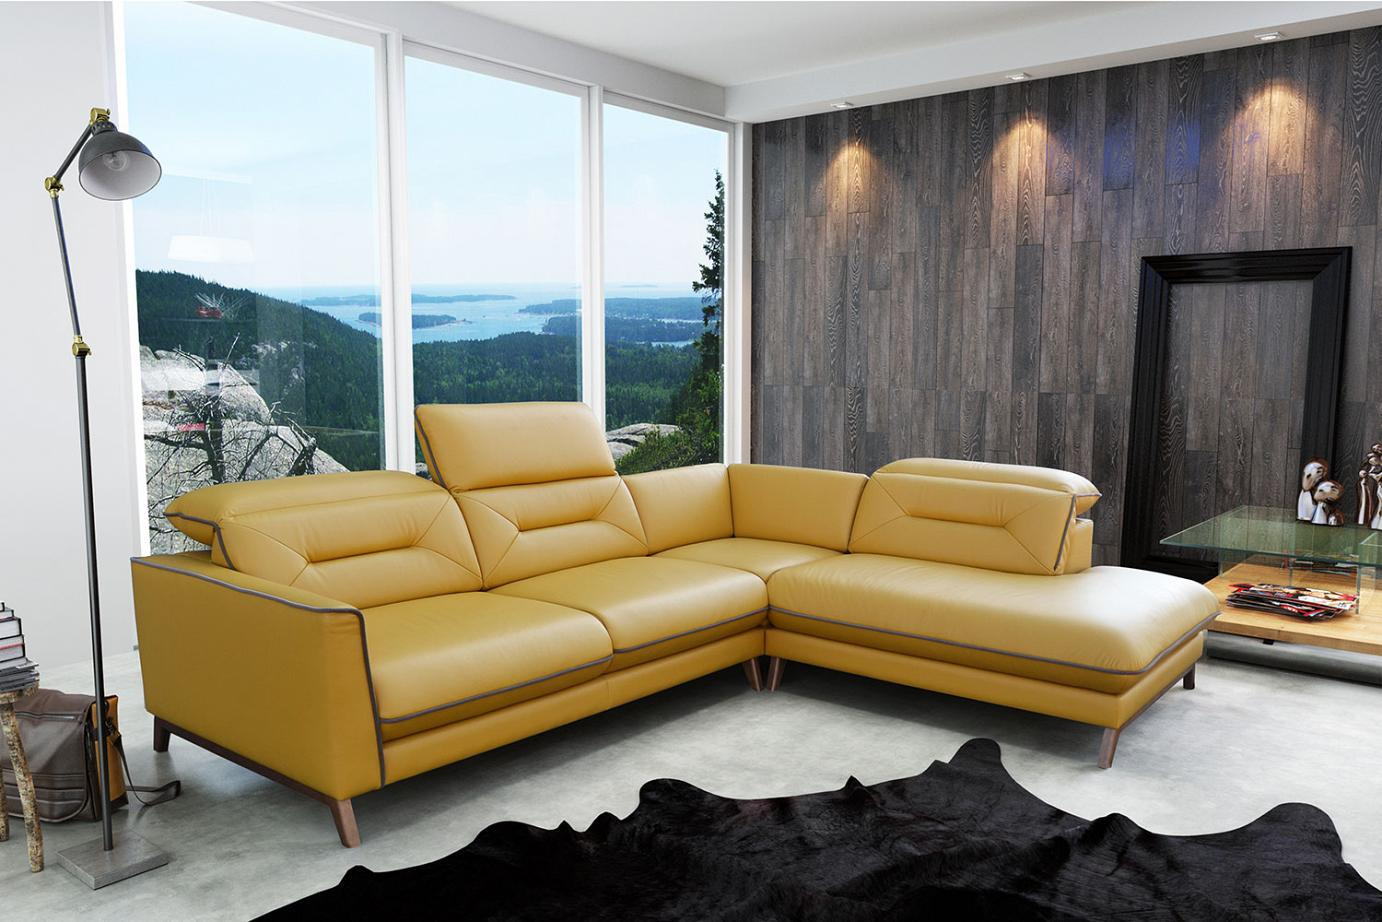 Retro Sofa Leather Stylized Retro Corner Sofa